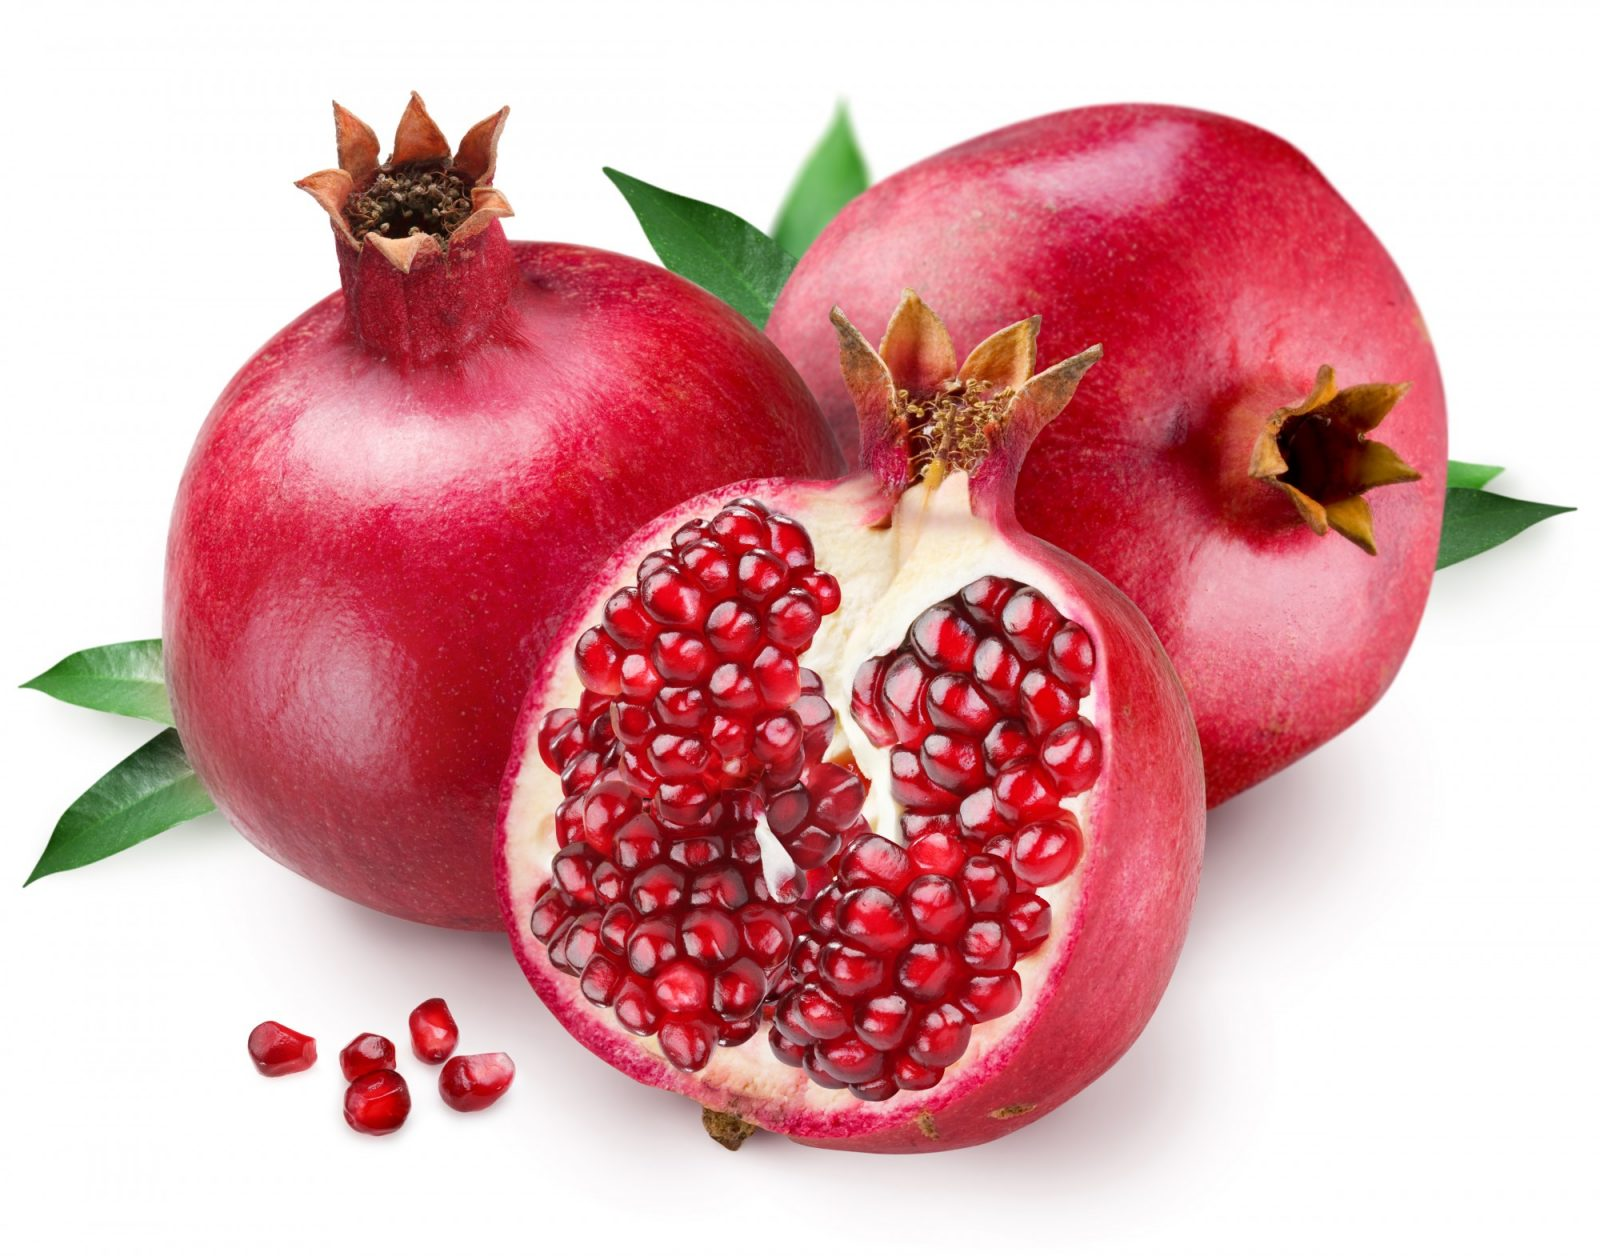 Pomegranates Treat Brain Disease